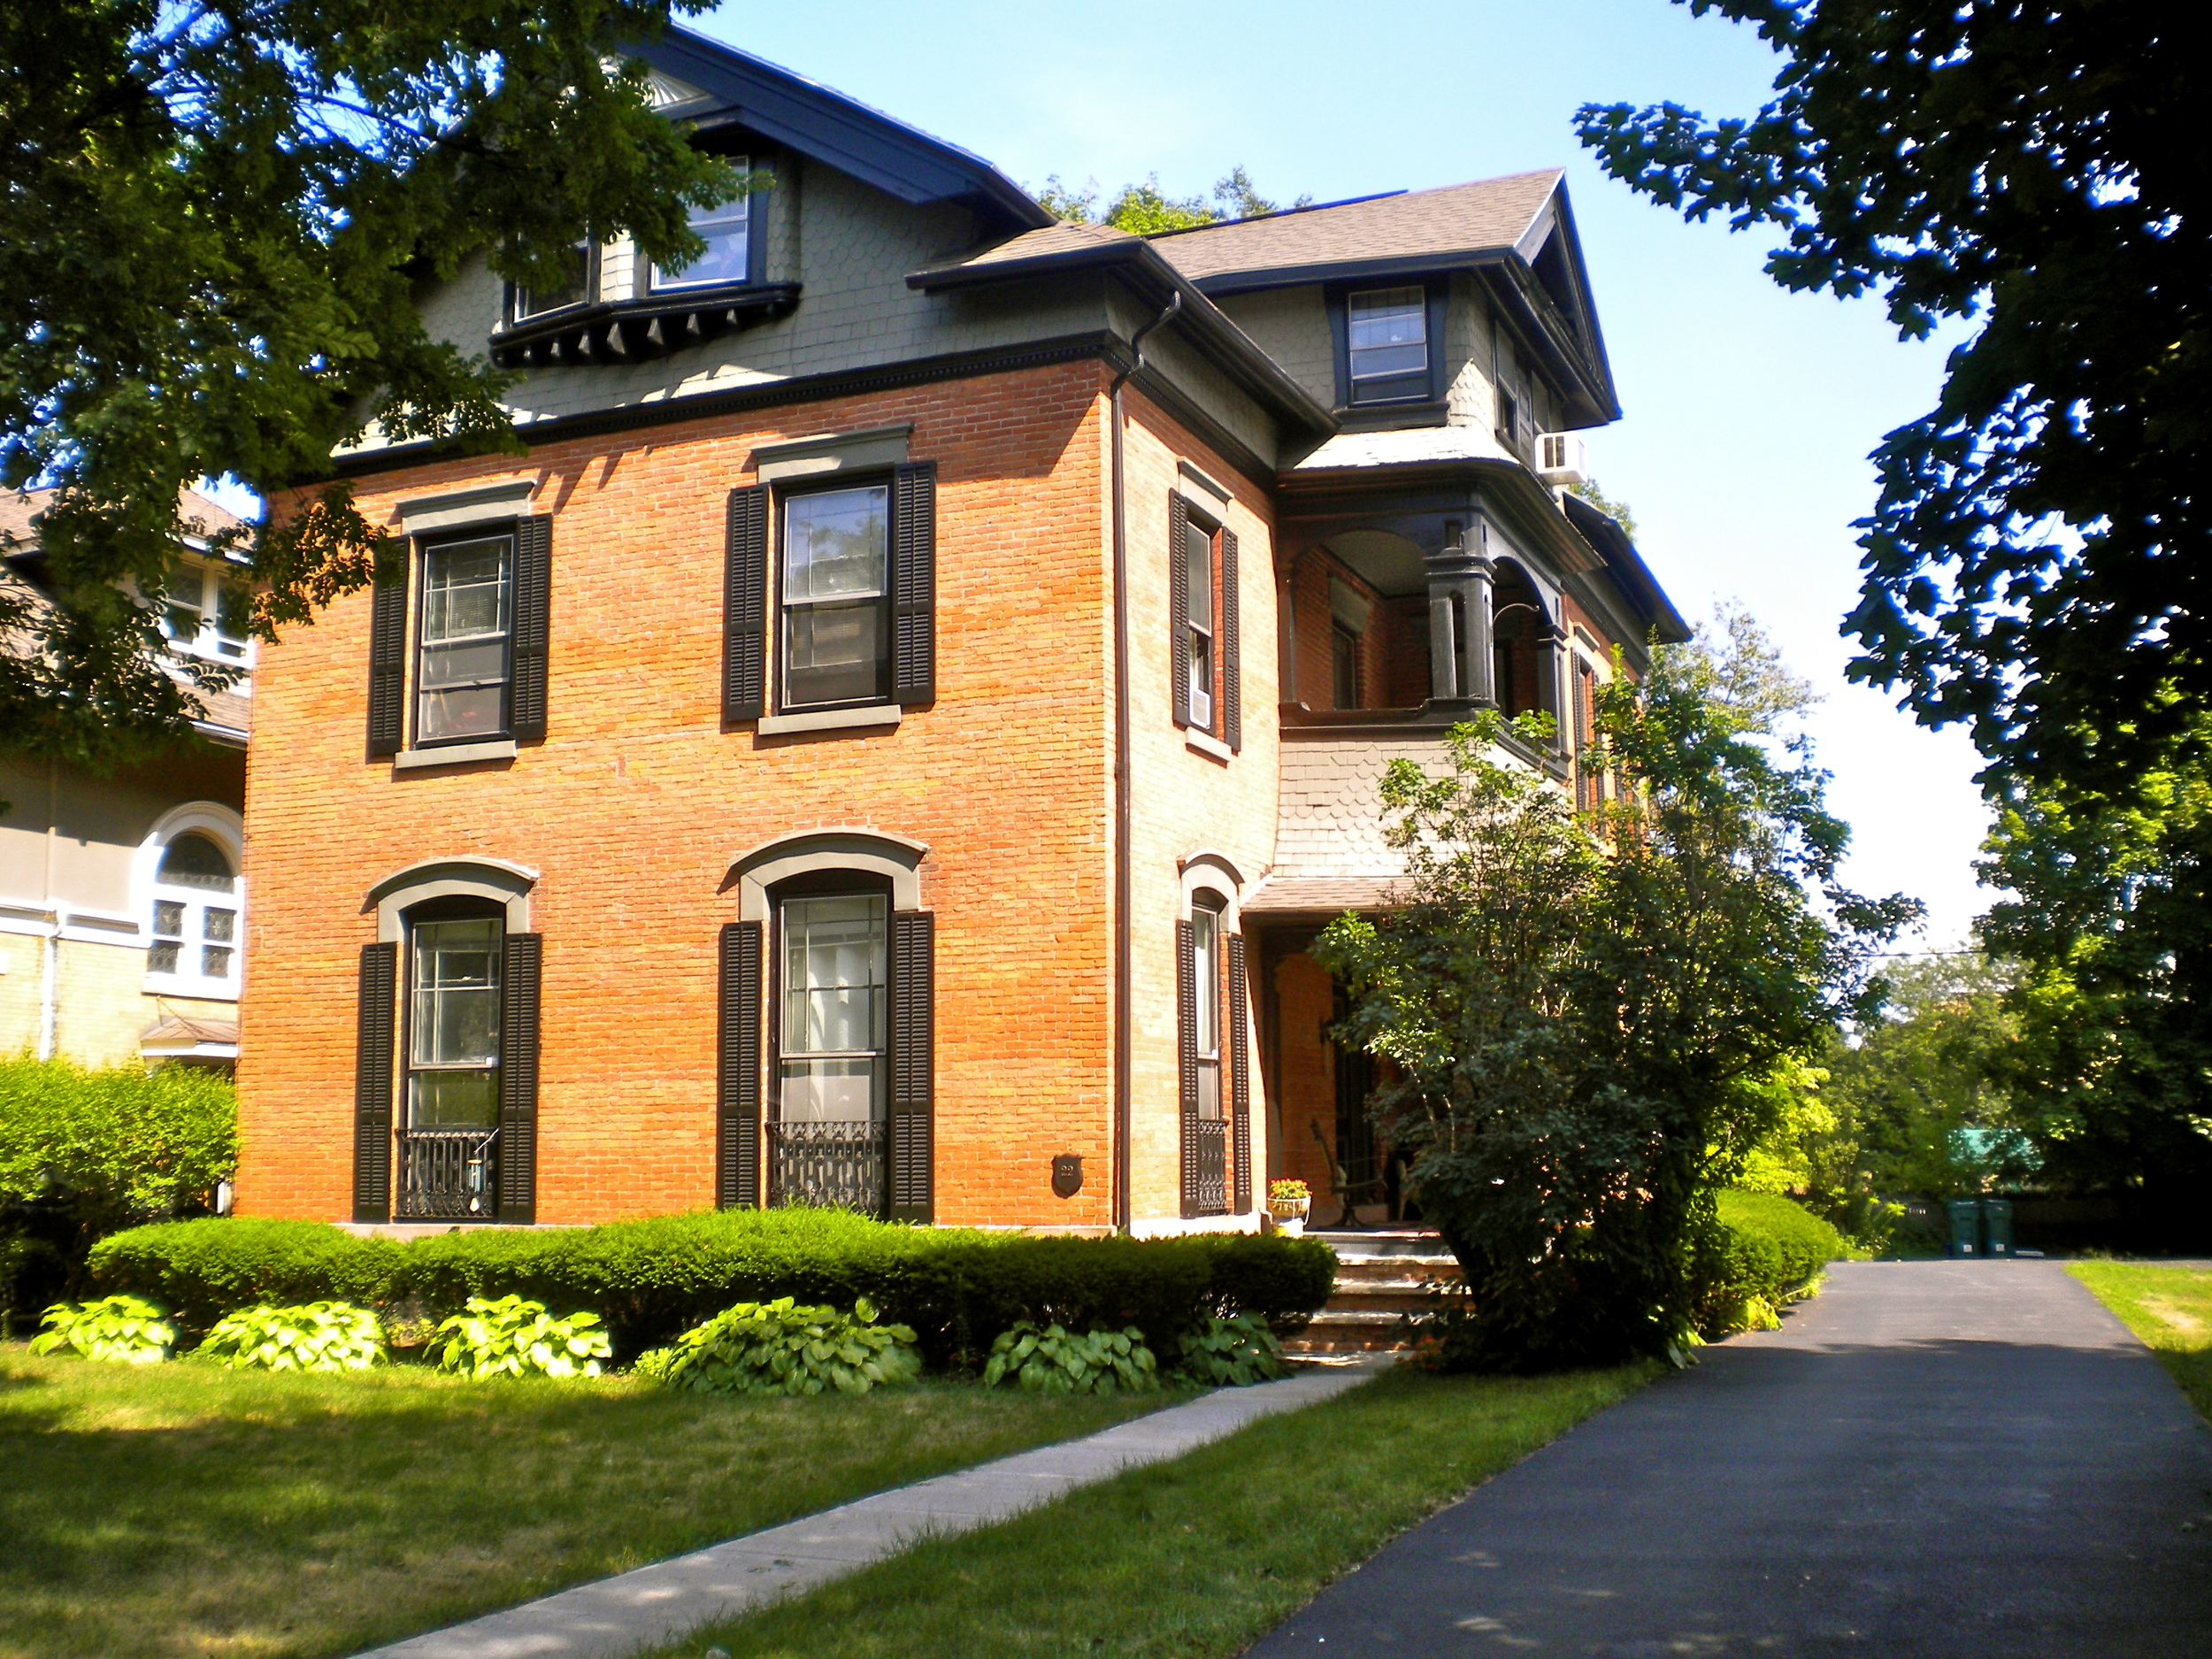 A charming Victorian house on a highly sought after quiet, tree lined street in Neighborhood of the Arts, the cultural center of the City of Rochester.